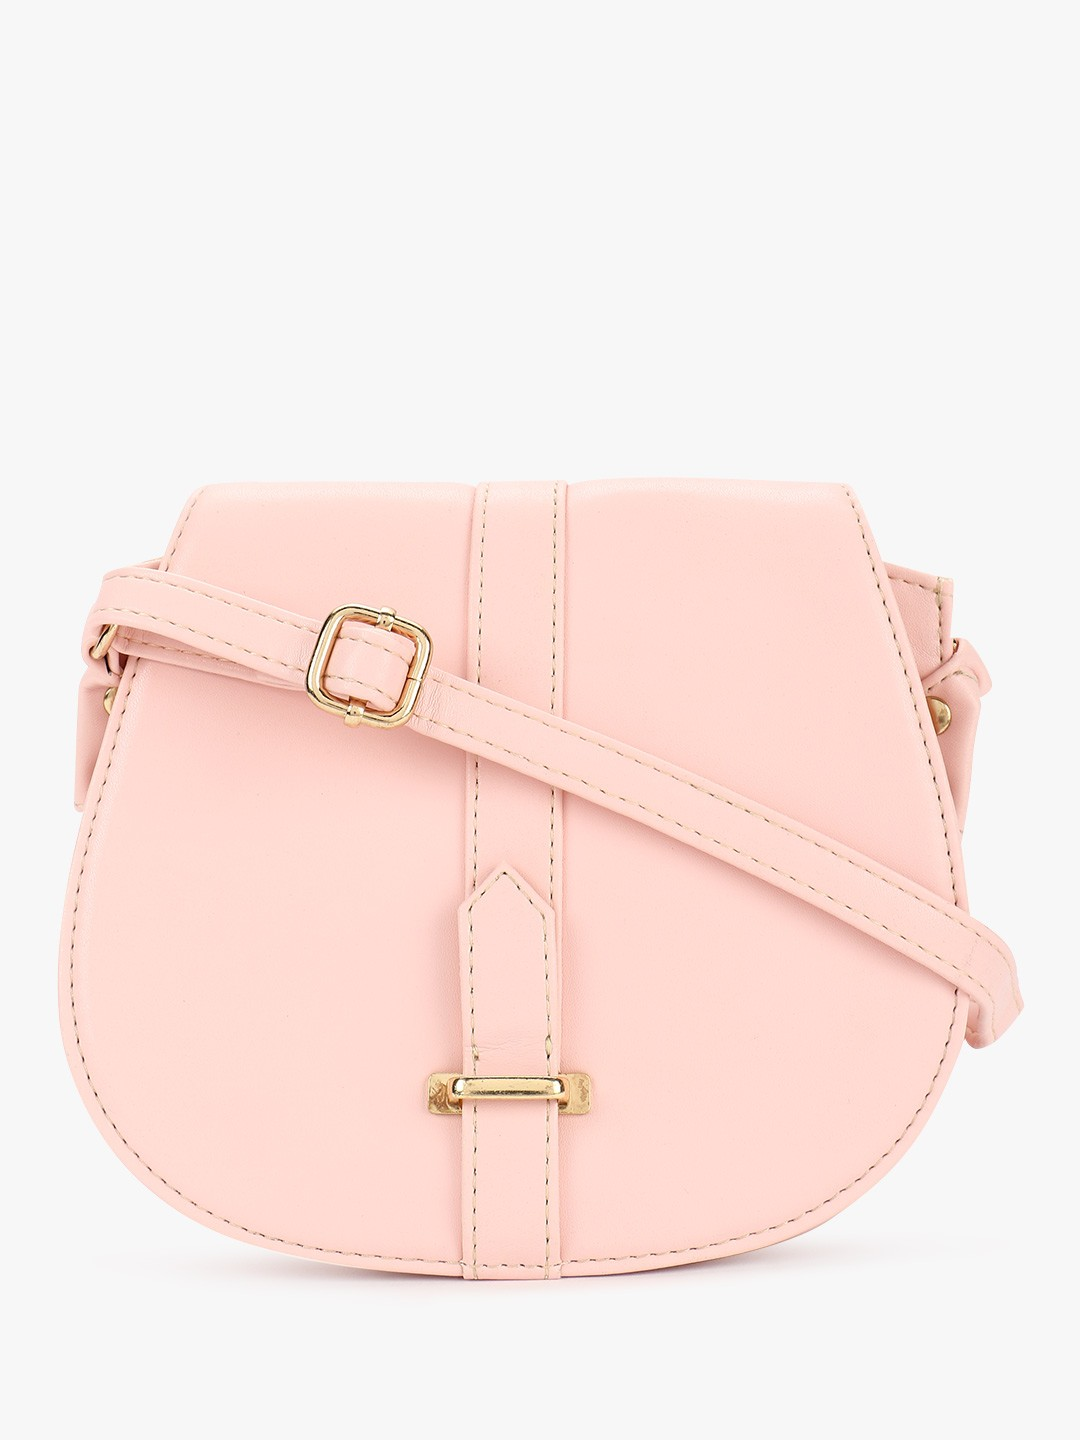 Paris Belle Pink Buckle Detail Sling Bag 1